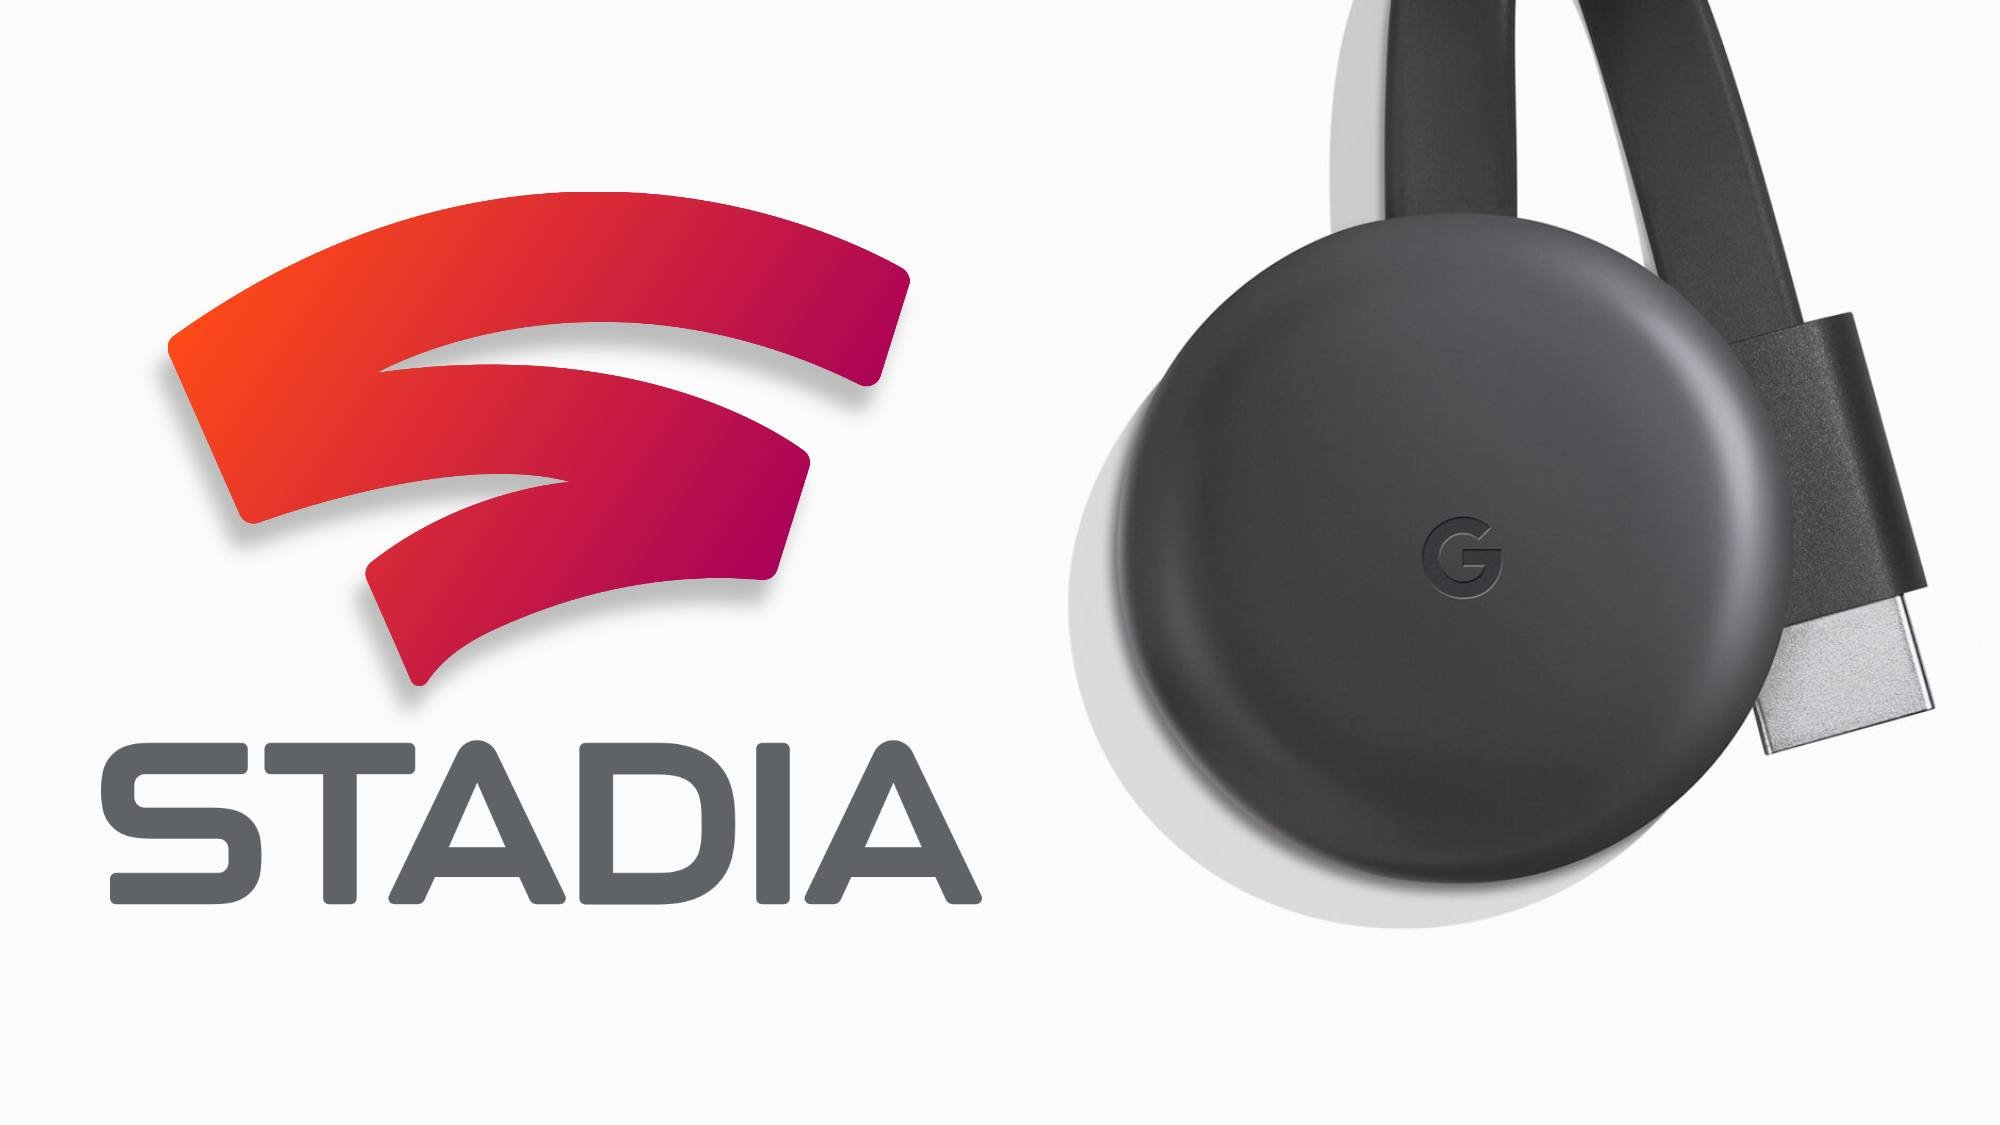 3rd-gen Chromecast could be Stadia's secret weapon